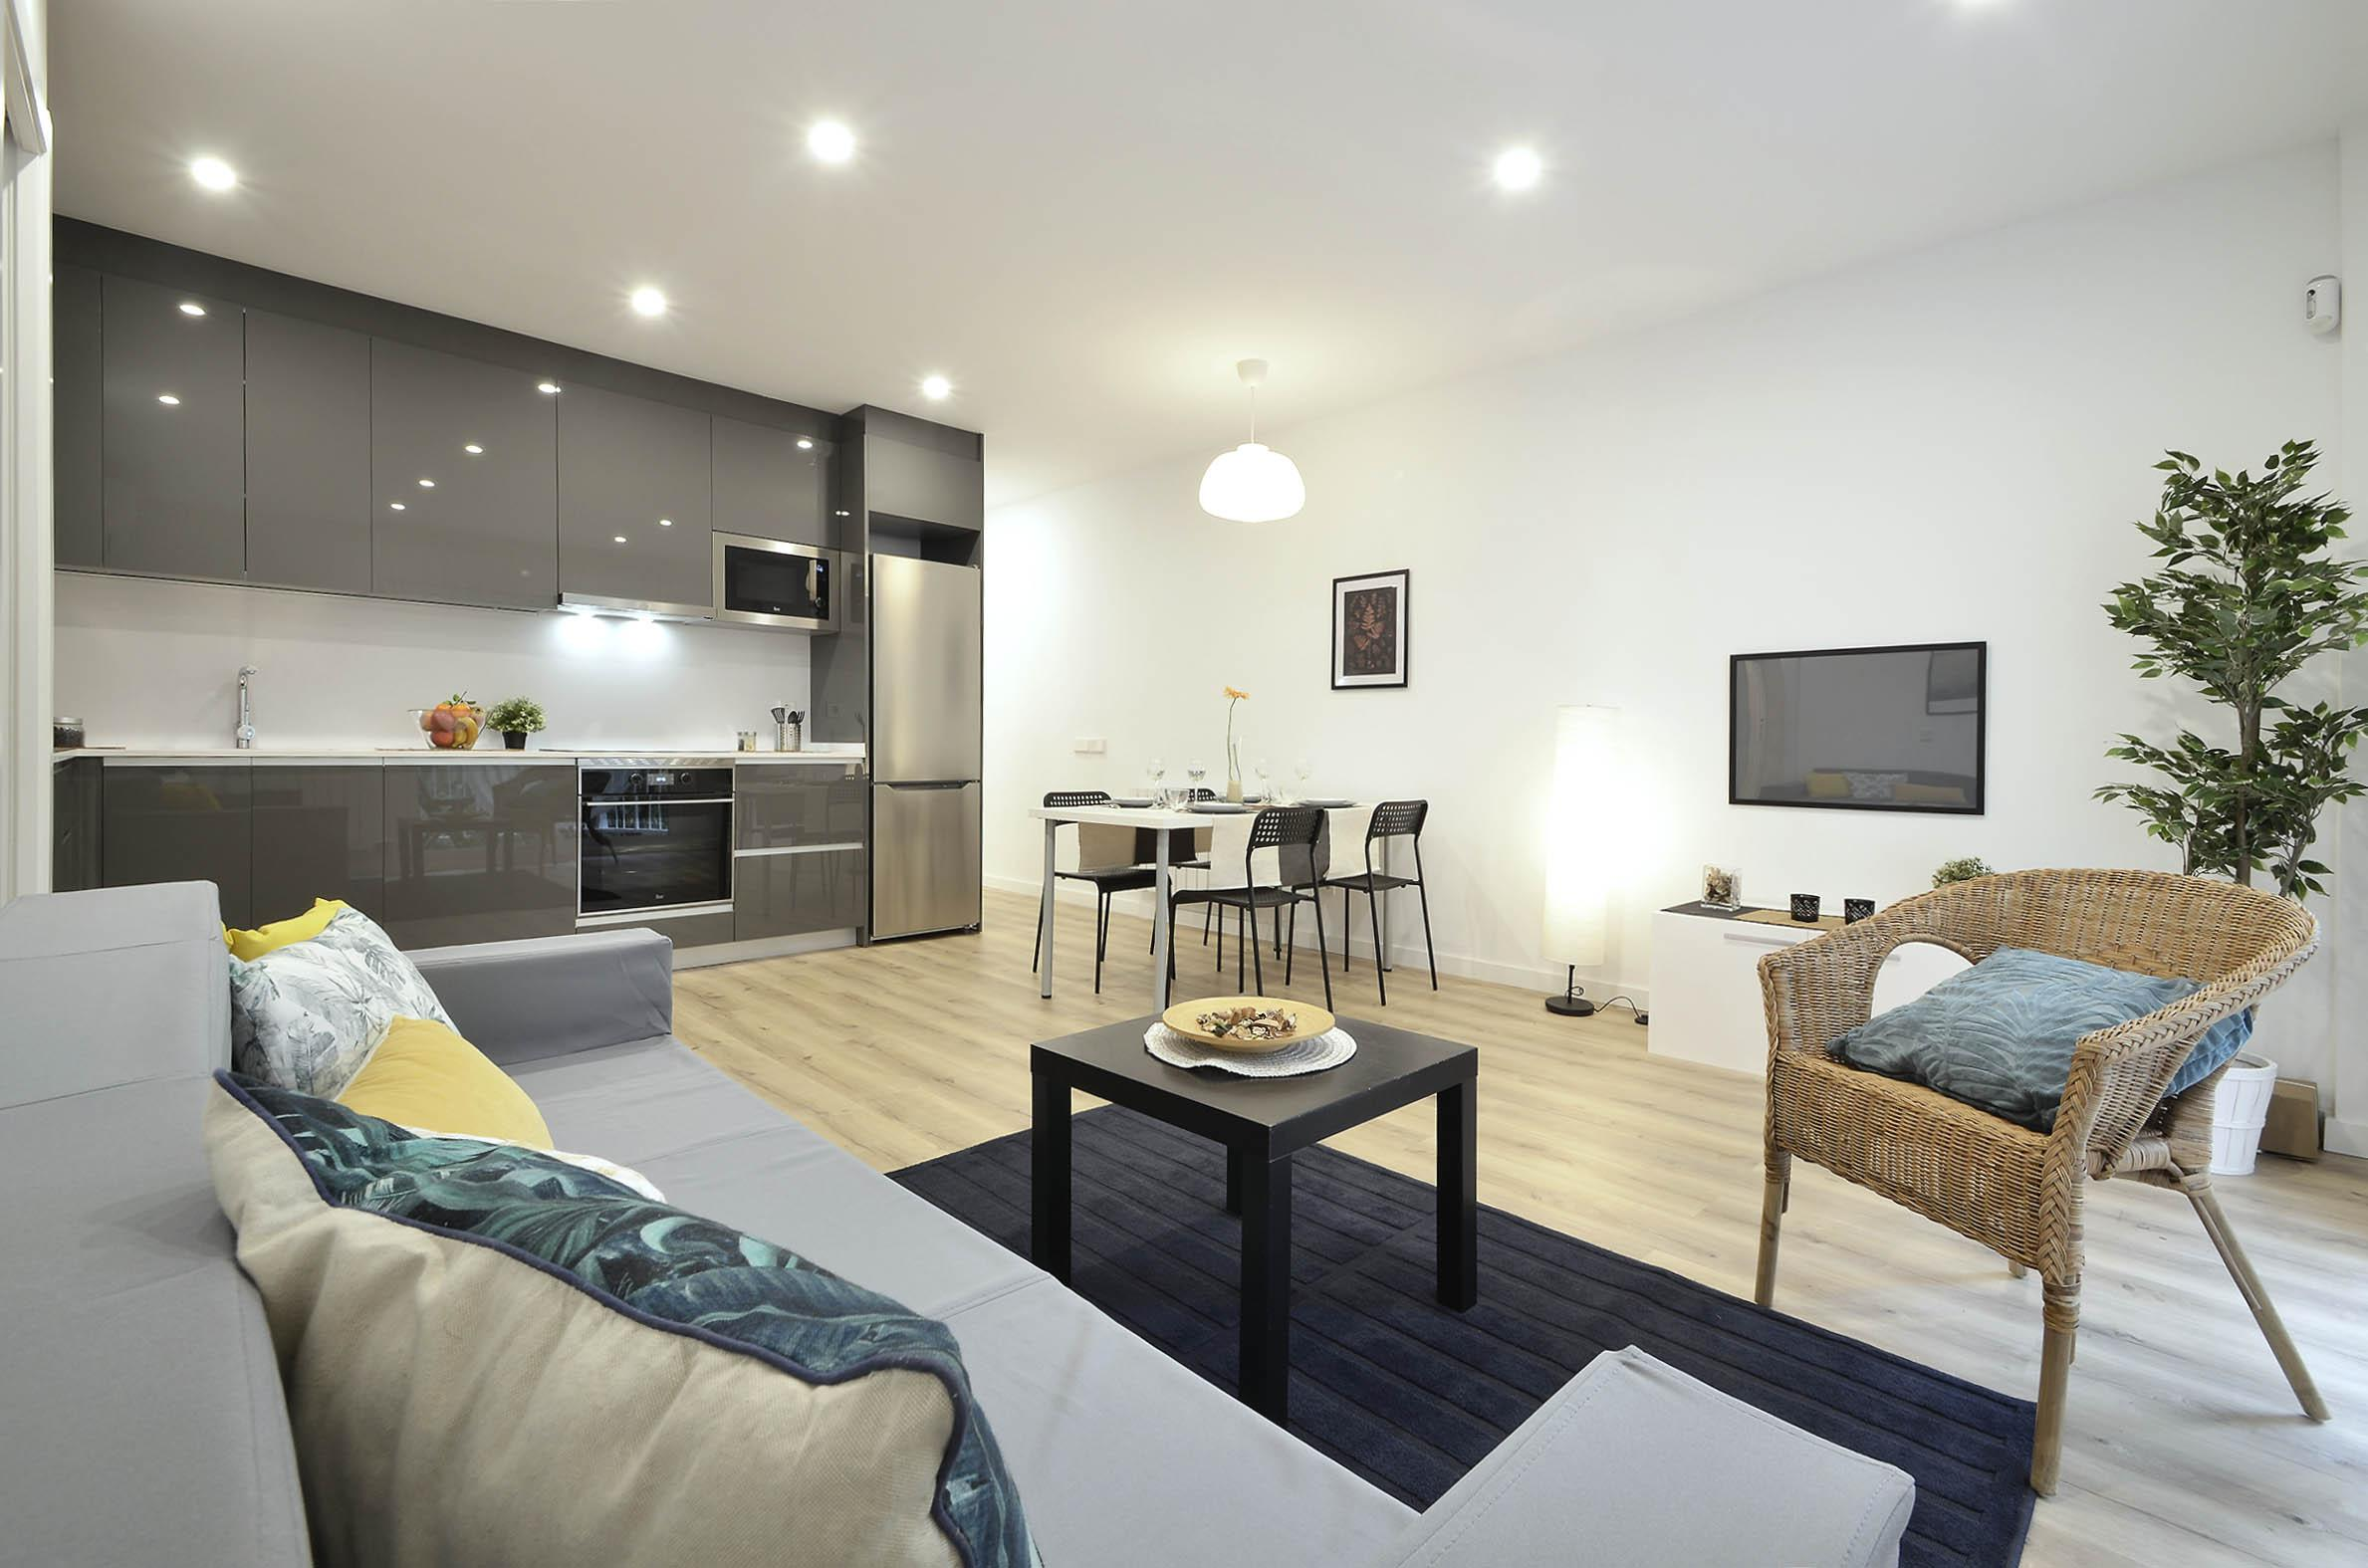 245687 Flat for sale in Eixample, Fort Pienc 1